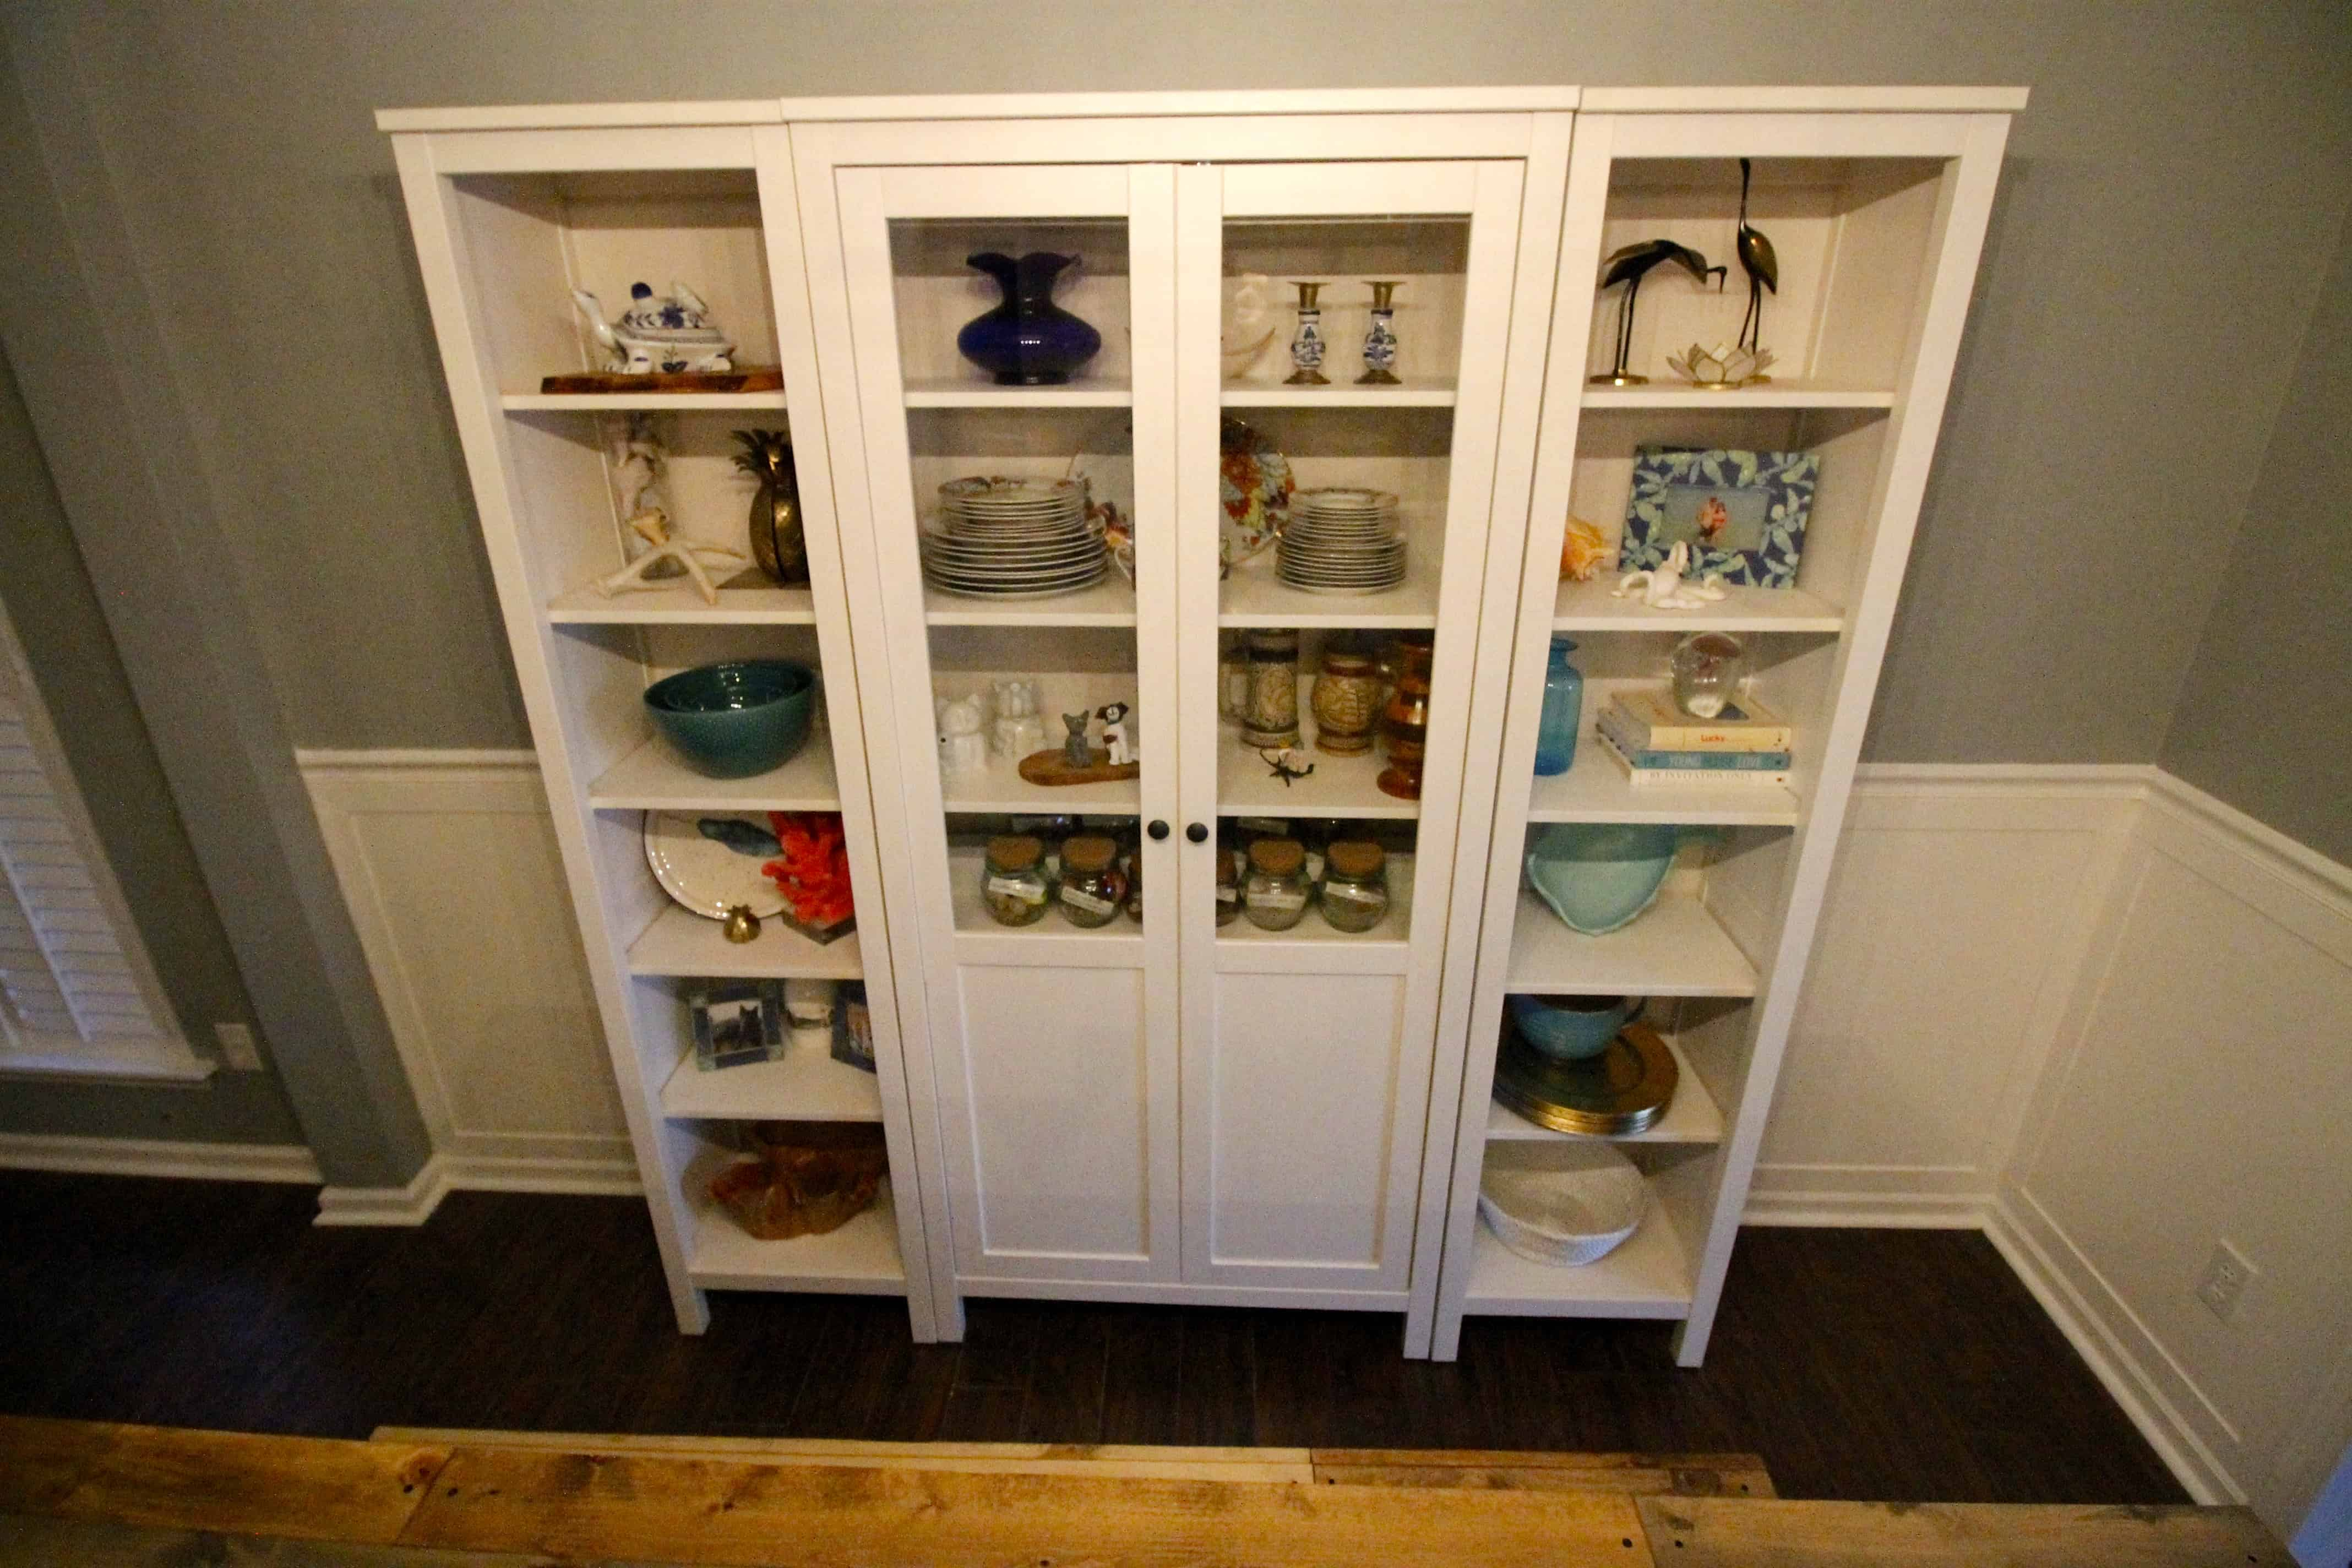 Bon I Am Focusing On Blue, White, Gold, And A Little Bit Of Natural Wood. What  Do You Think? The Center Cabinet Holds My China Set And A Few Other Pieces.